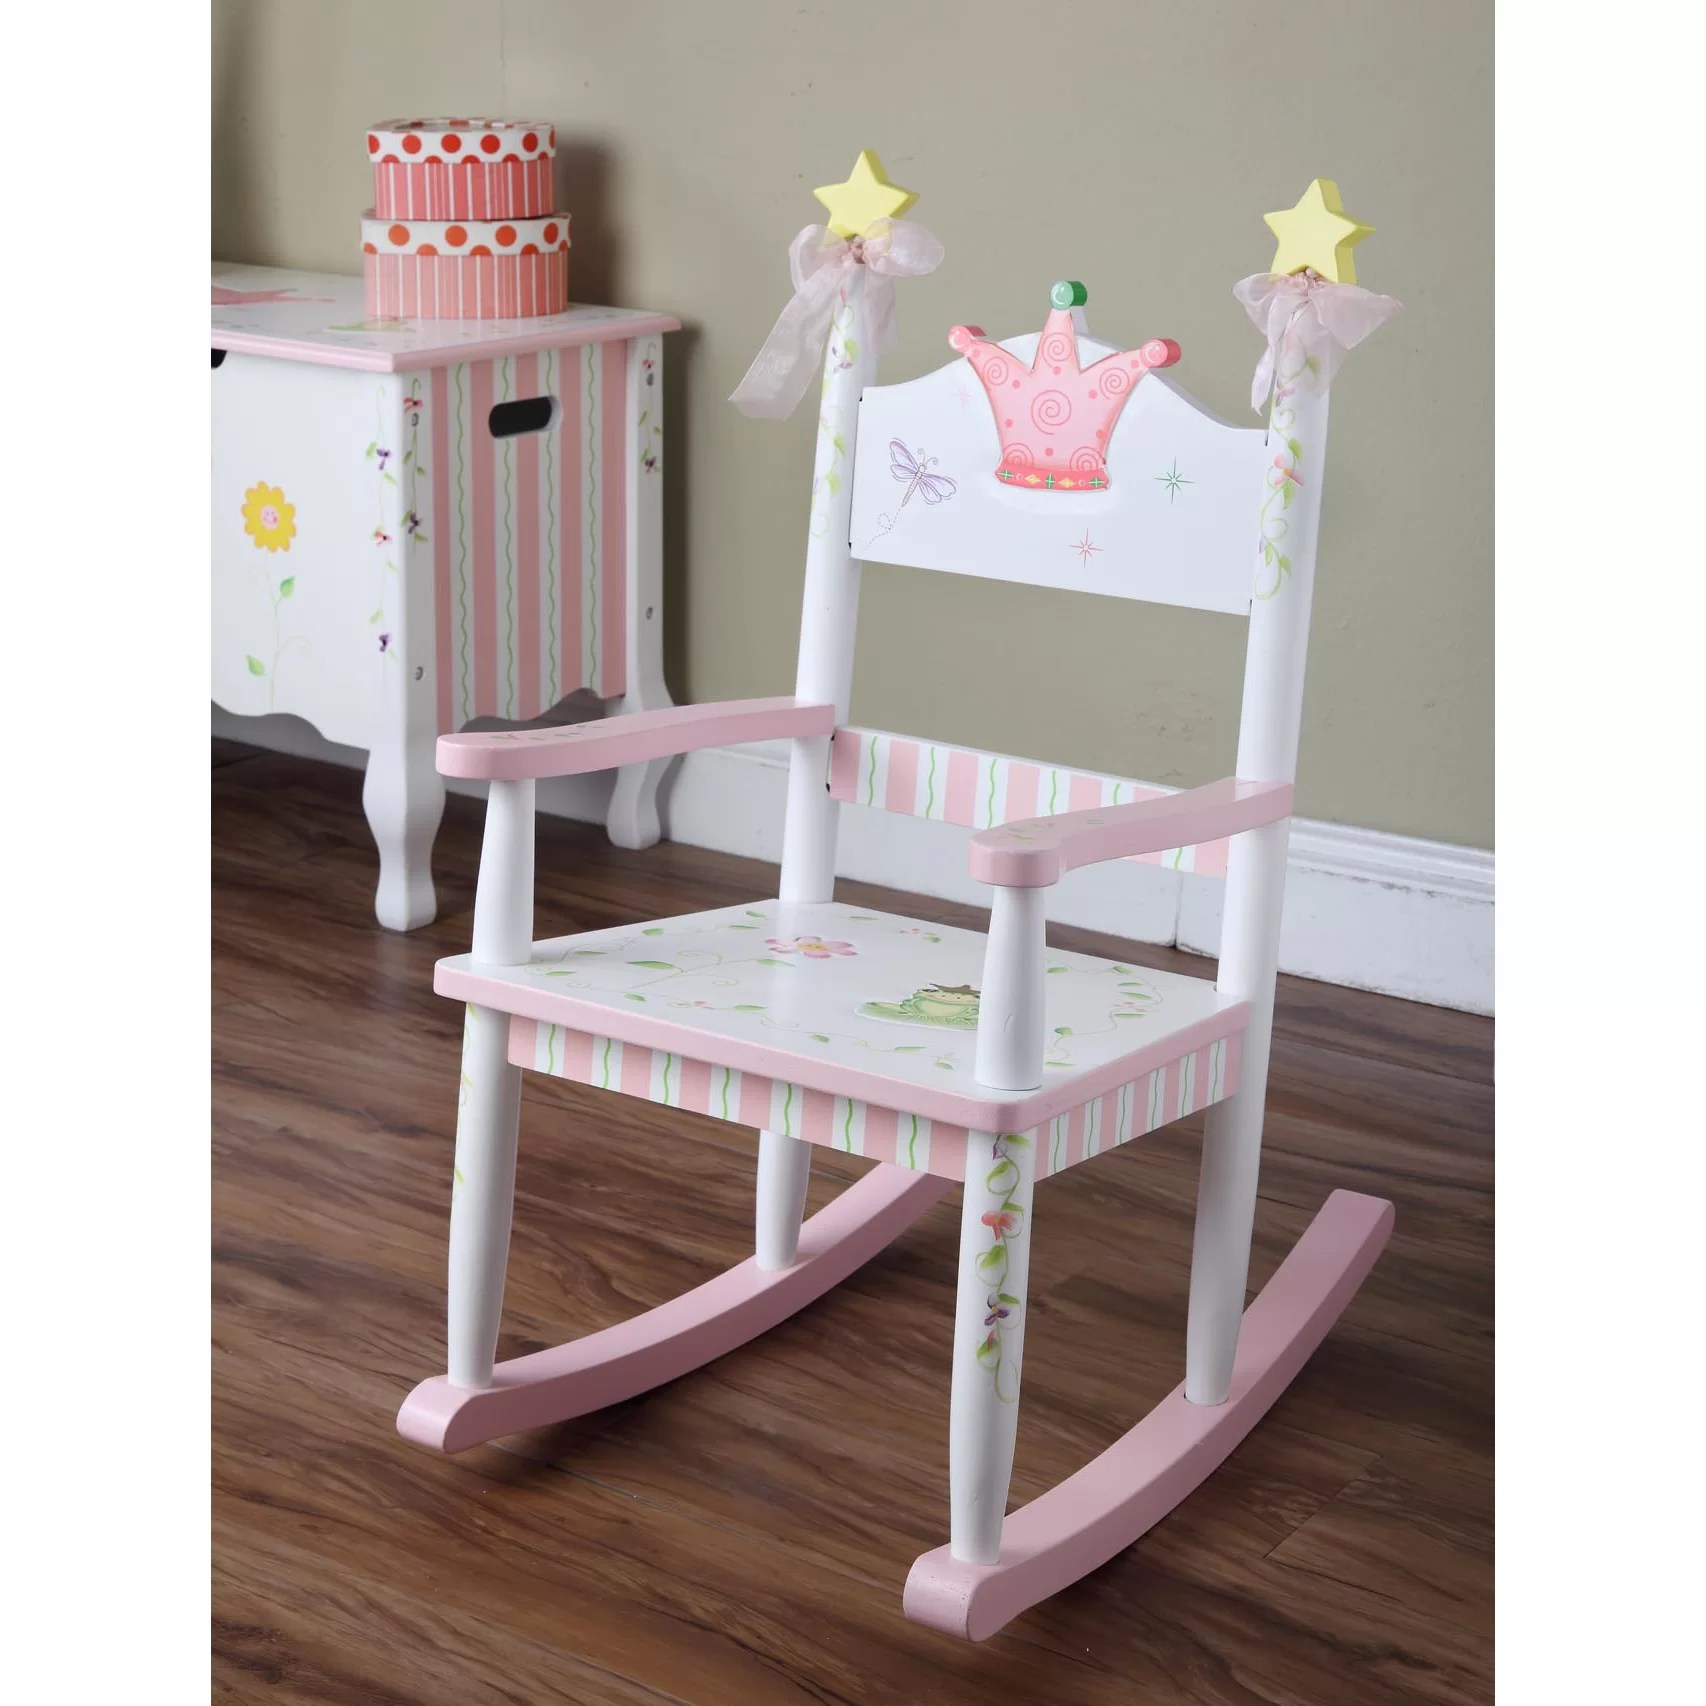 little girl rocking chair wedding covers hire oxfordshire fantasy fields princess and frog kids